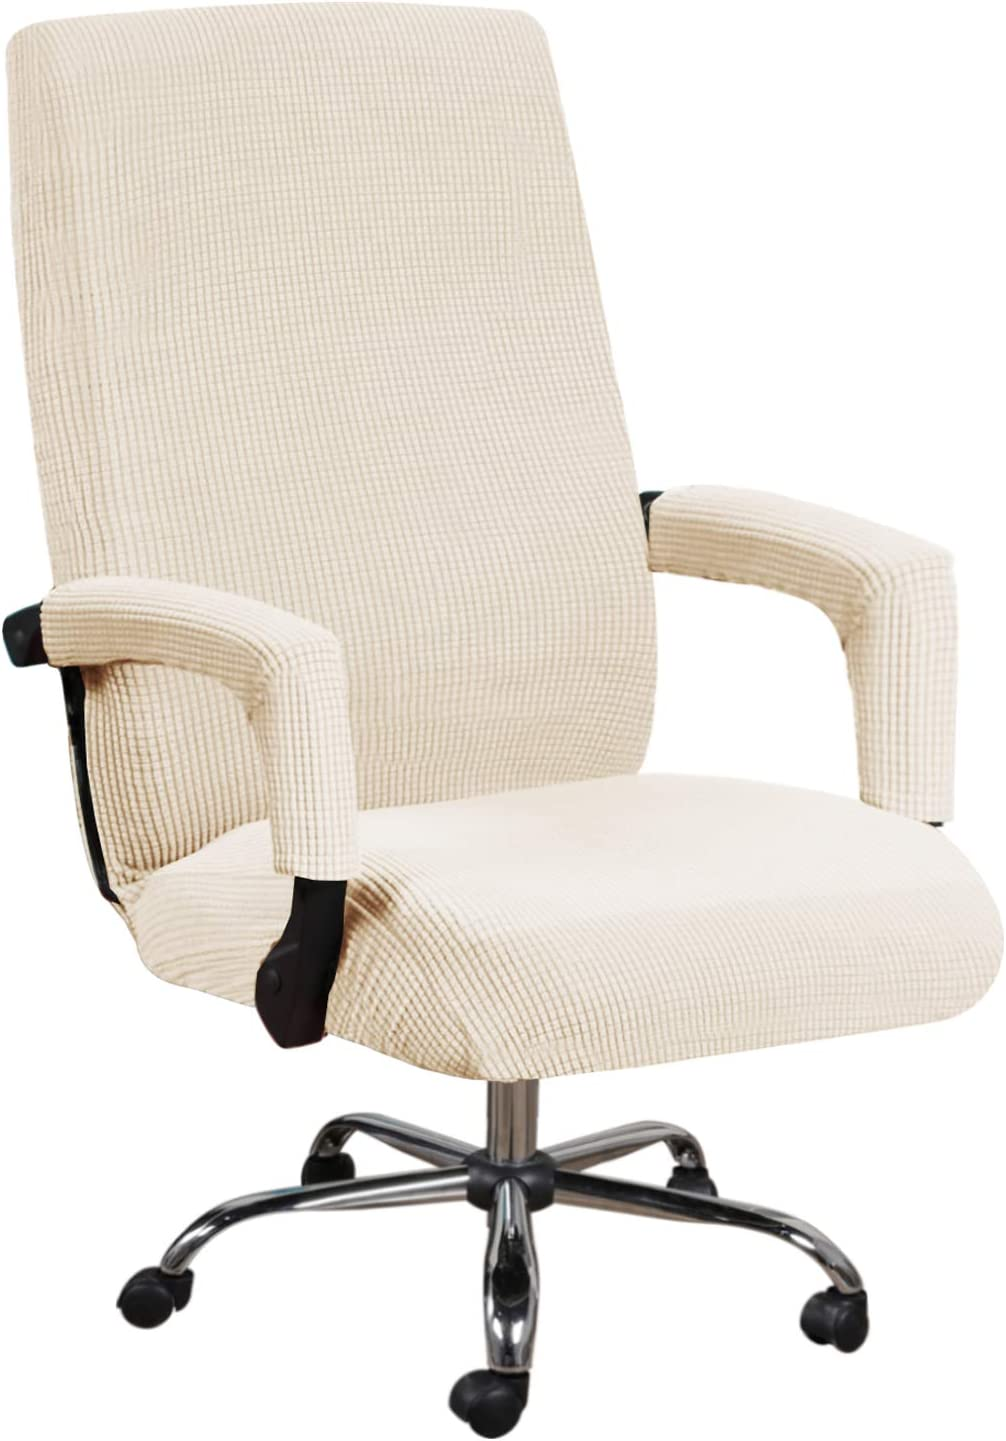 Office Chair Cover Computer Chair Universal Boss Chair Cover Rotating Swivel Chair Cover High Stretch Spandex Jacquard Fabric Removable Washable Anti-dust Chair Cover Protectors, Medium, Natural